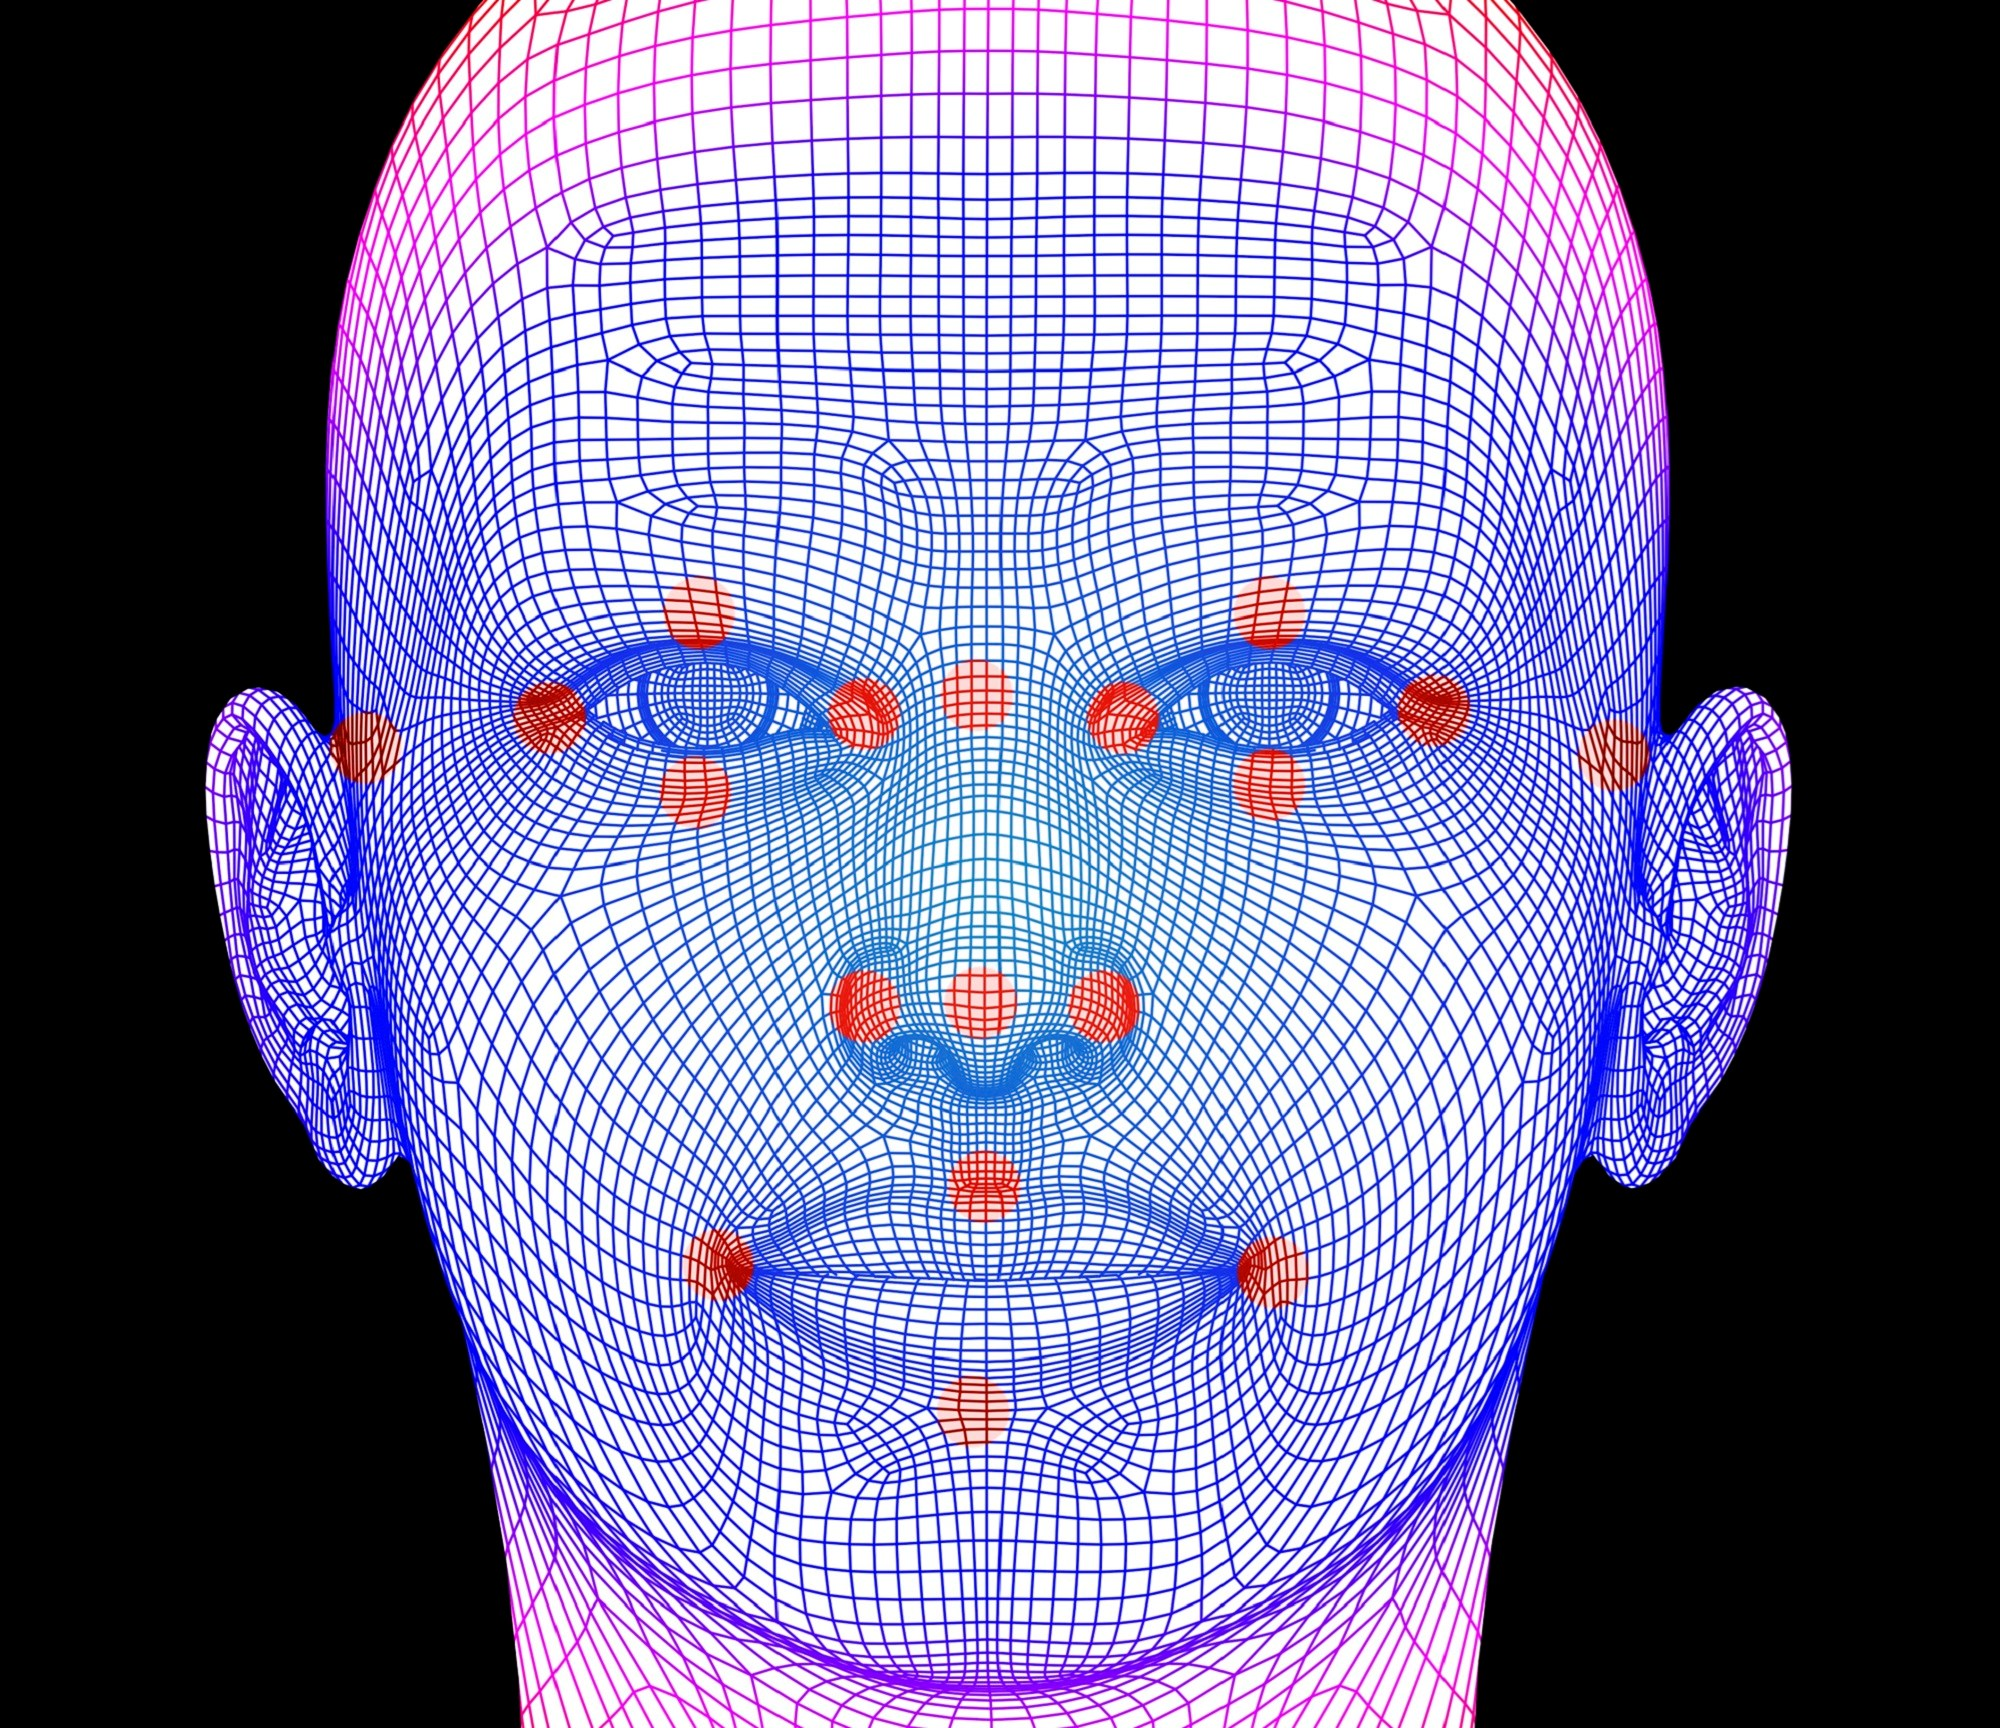 Certain genetic diseases can be detected by new artificial intelligence technology that analyzes a photo of a person's face.